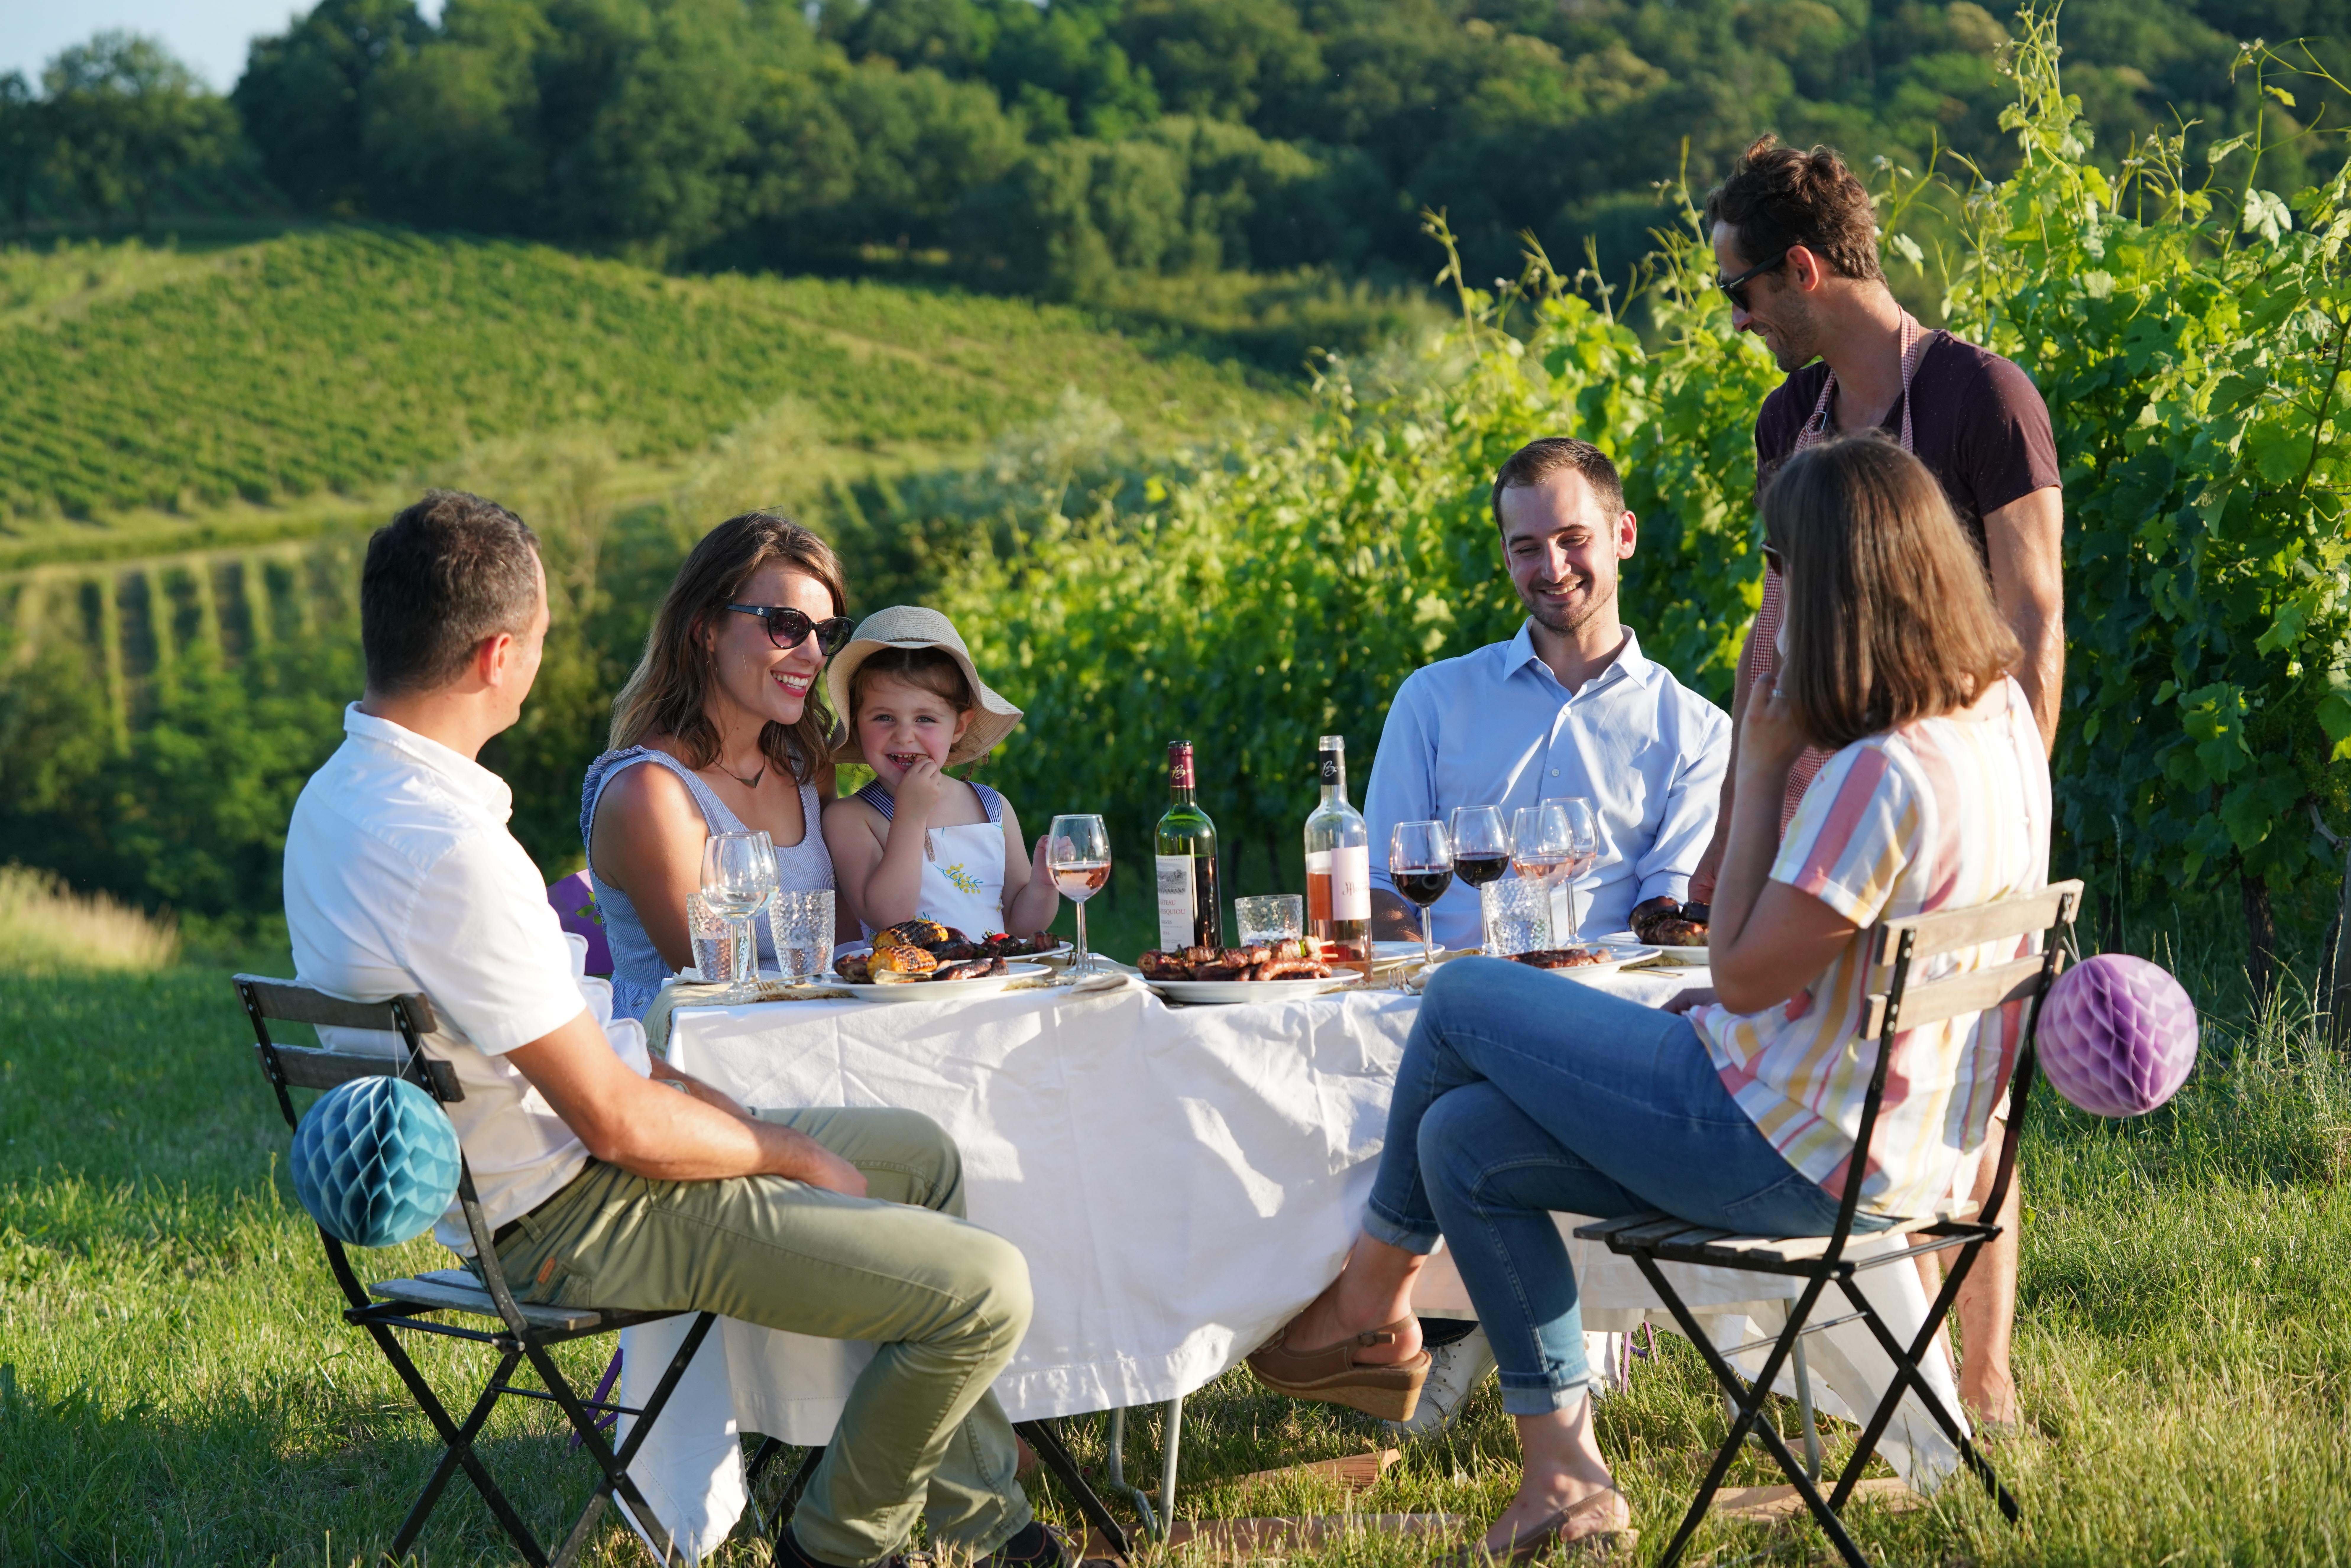 famille rire table vin